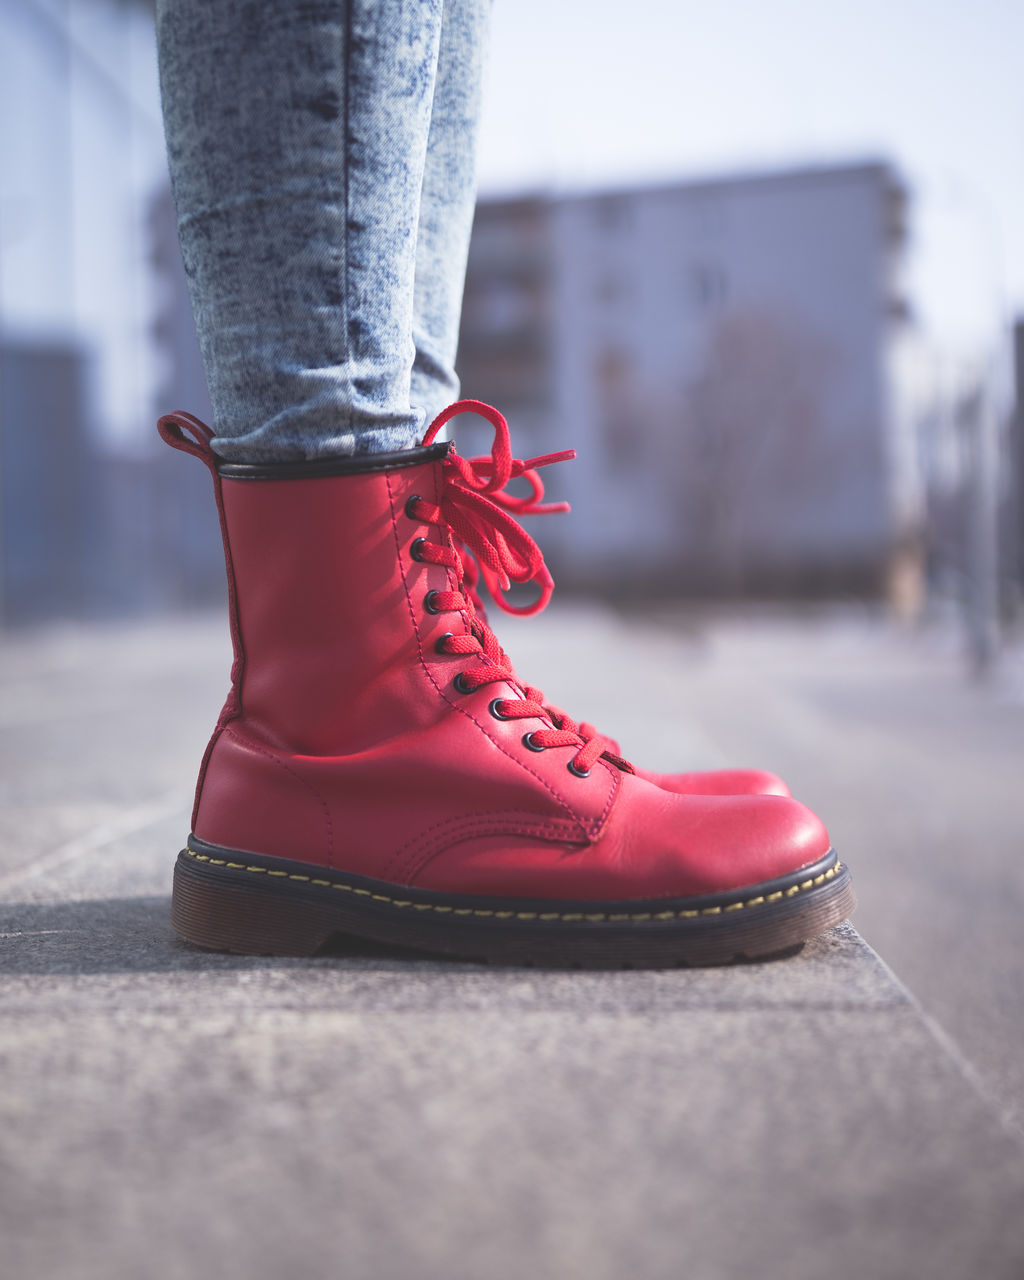 shoe, low section, one person, human leg, red, body part, real people, human body part, close-up, selective focus, shoelace, day, lifestyles, jeans, unrecognizable person, focus on foreground, standing, outdoors, limb, human foot, human limb, leather, lace - fastener